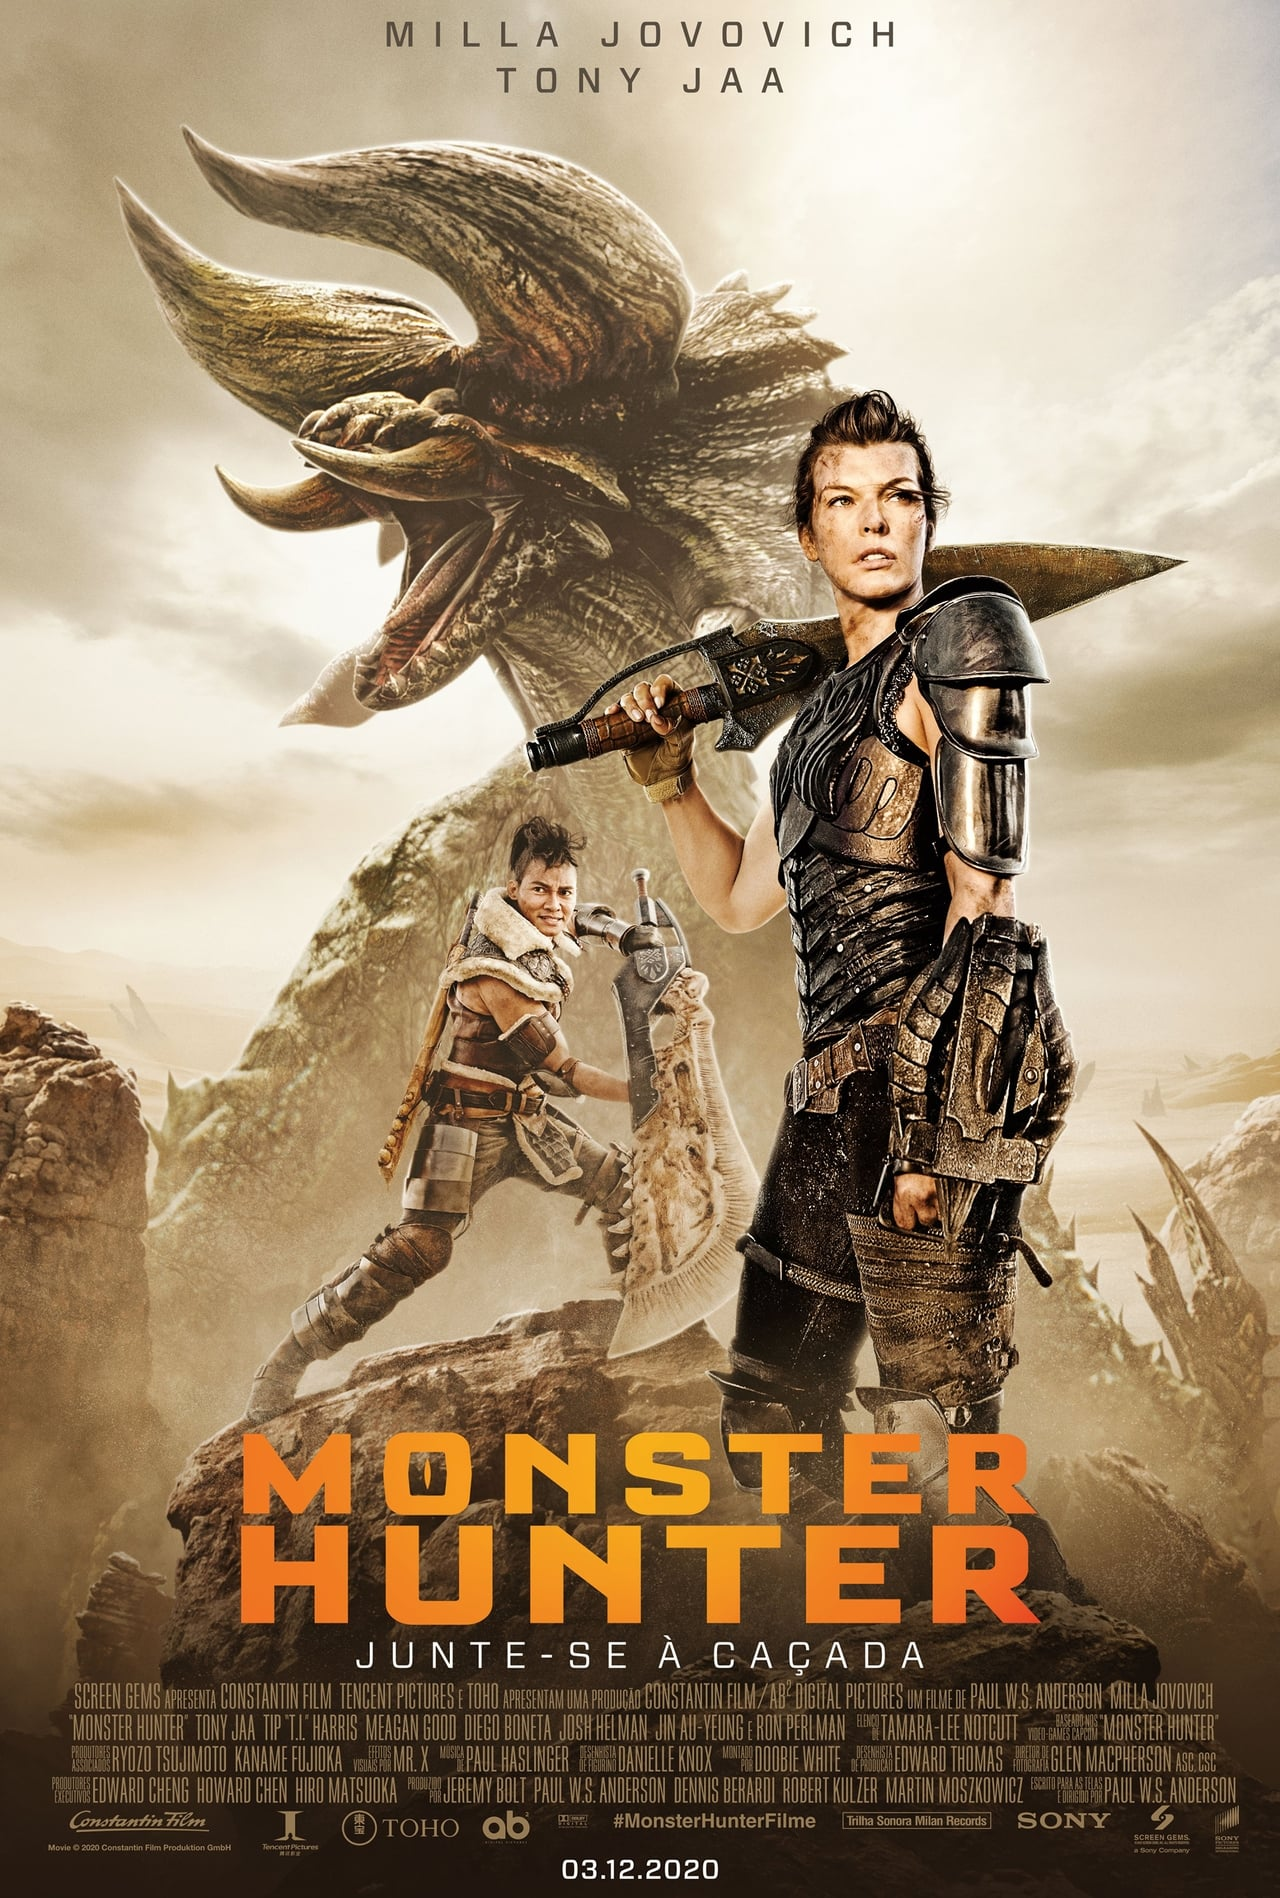 Monster Hunter (2020) 720p HDCAM Dual Audio [Unofficial Dubbed] Hindi-English x264 AAC